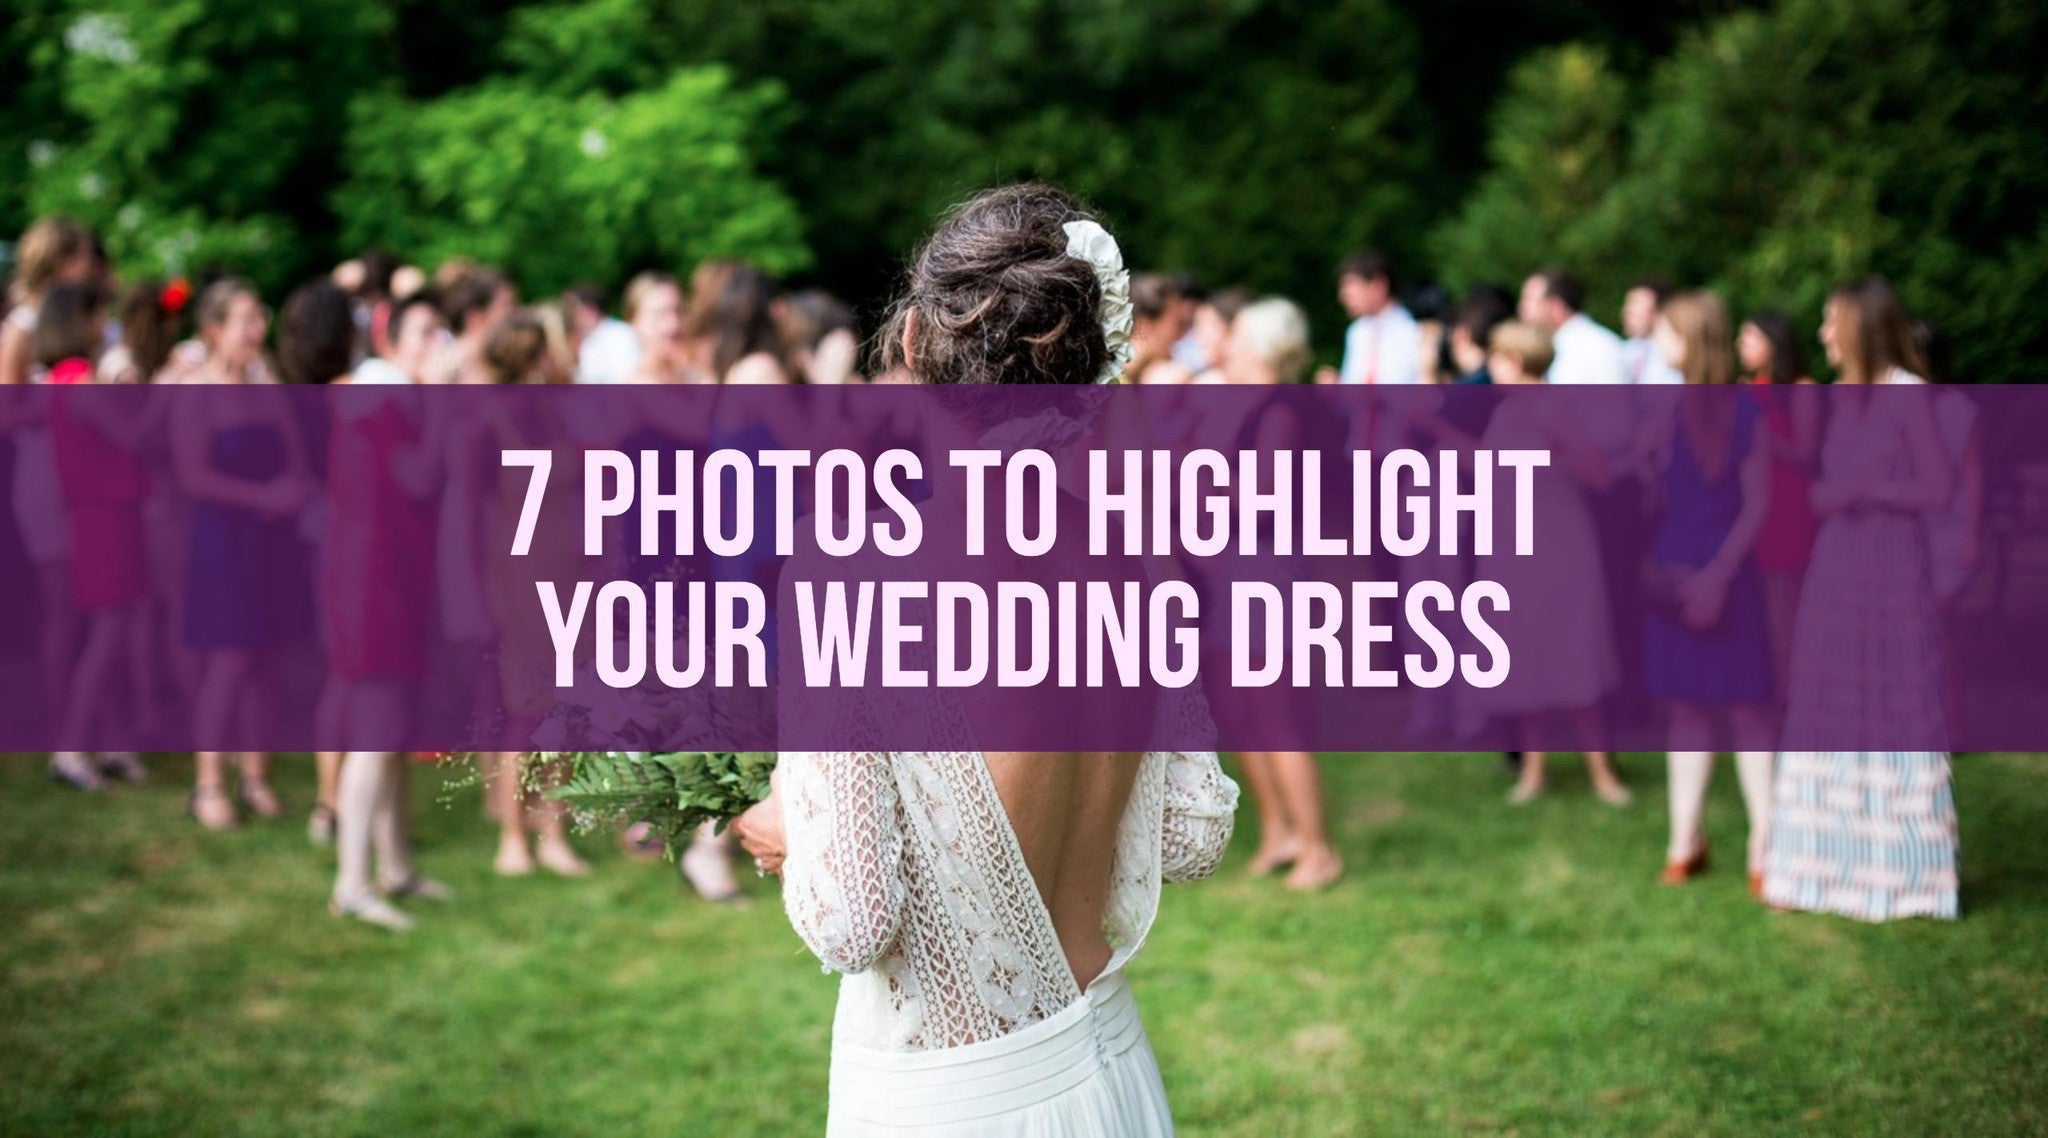 7 Photos to Highlight Your Wedding Dress